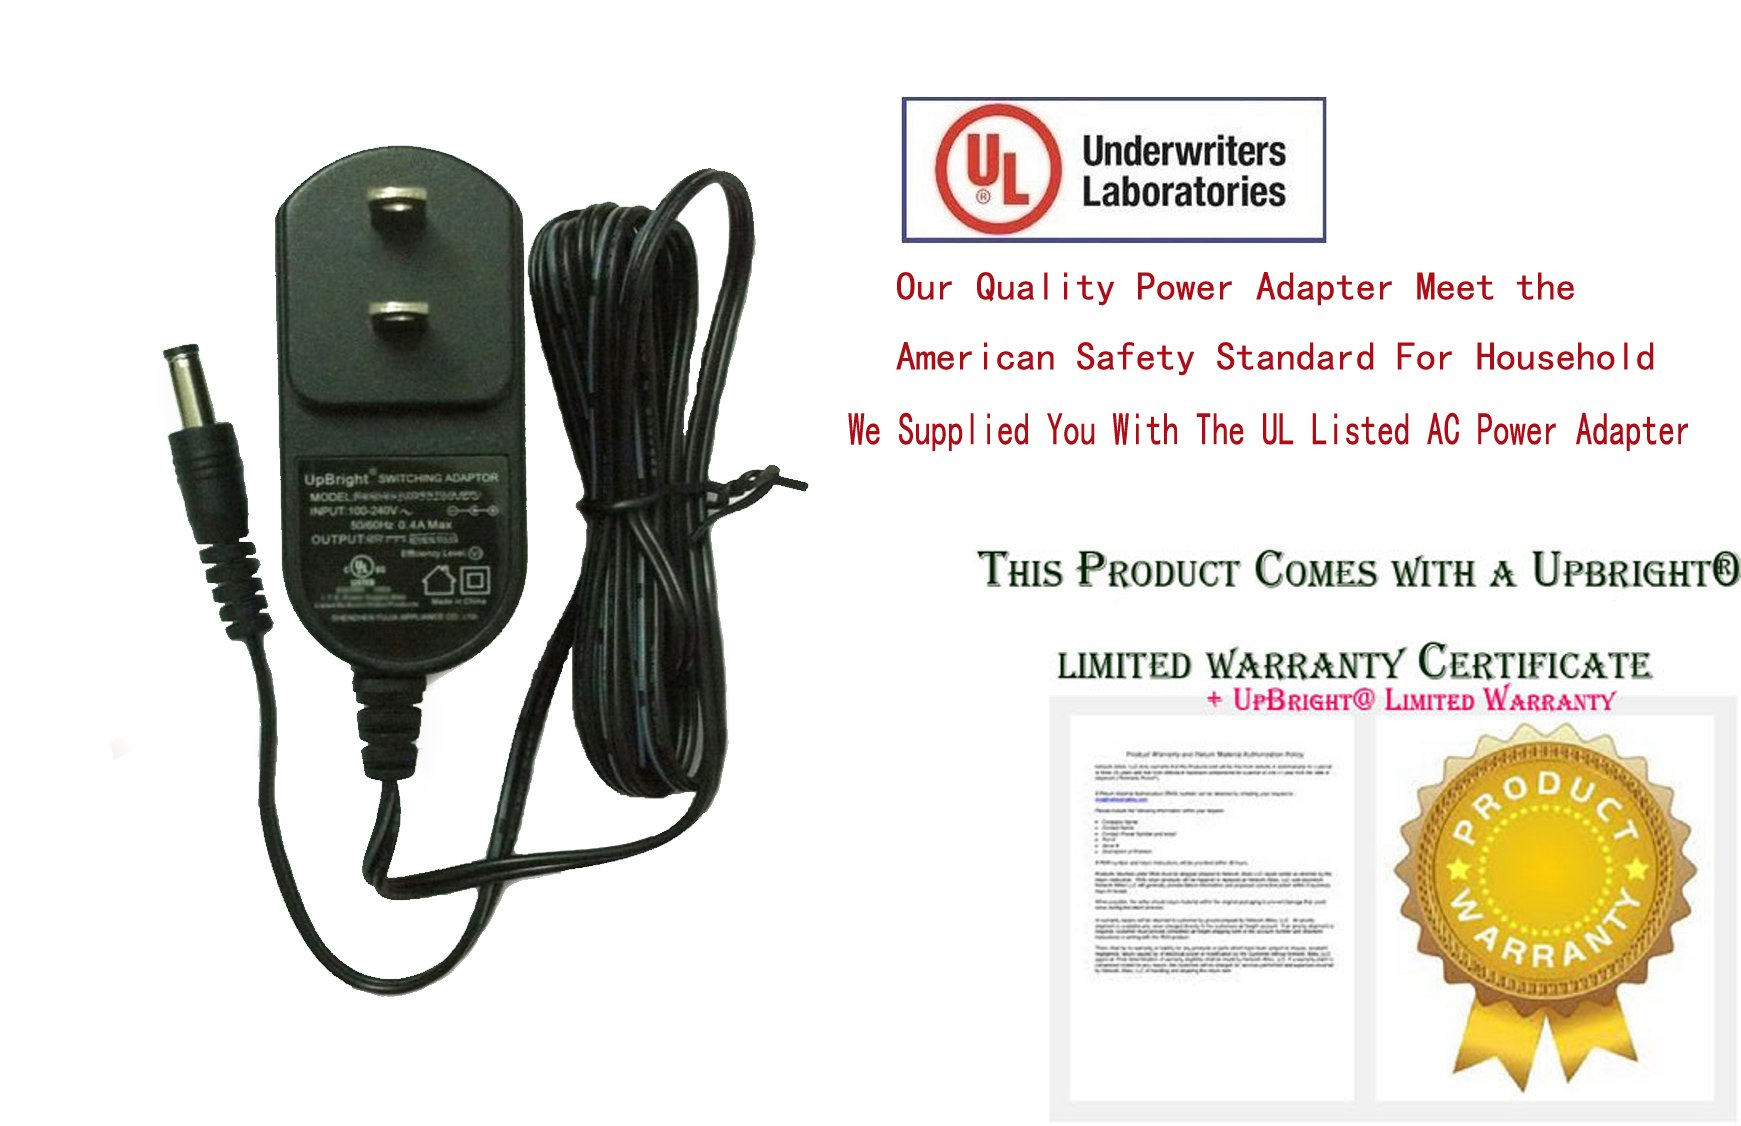 UpBright [UL Listed] New Global 6V AC / DC Adapter For Panasonic EW3109 EW3109W EW3122 EW3122S EW 3109 EW 3109W EW 3122 EW 3122S Blood Pressure Monitor BP 6.0V 6VDC Power Supply Cord Charger PSU